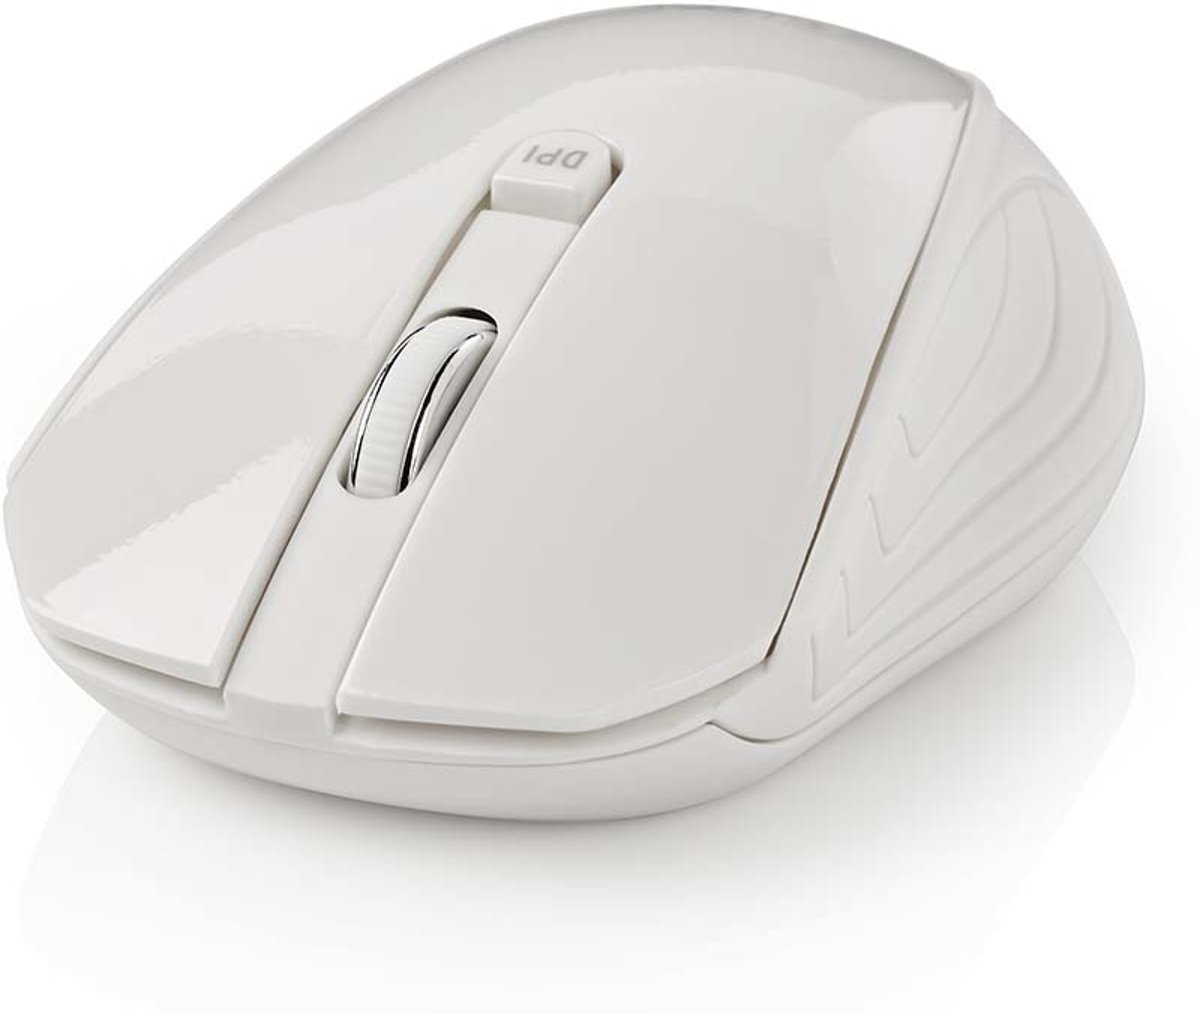 Wireless Mouse | 1000 DPI | 3-Button | White